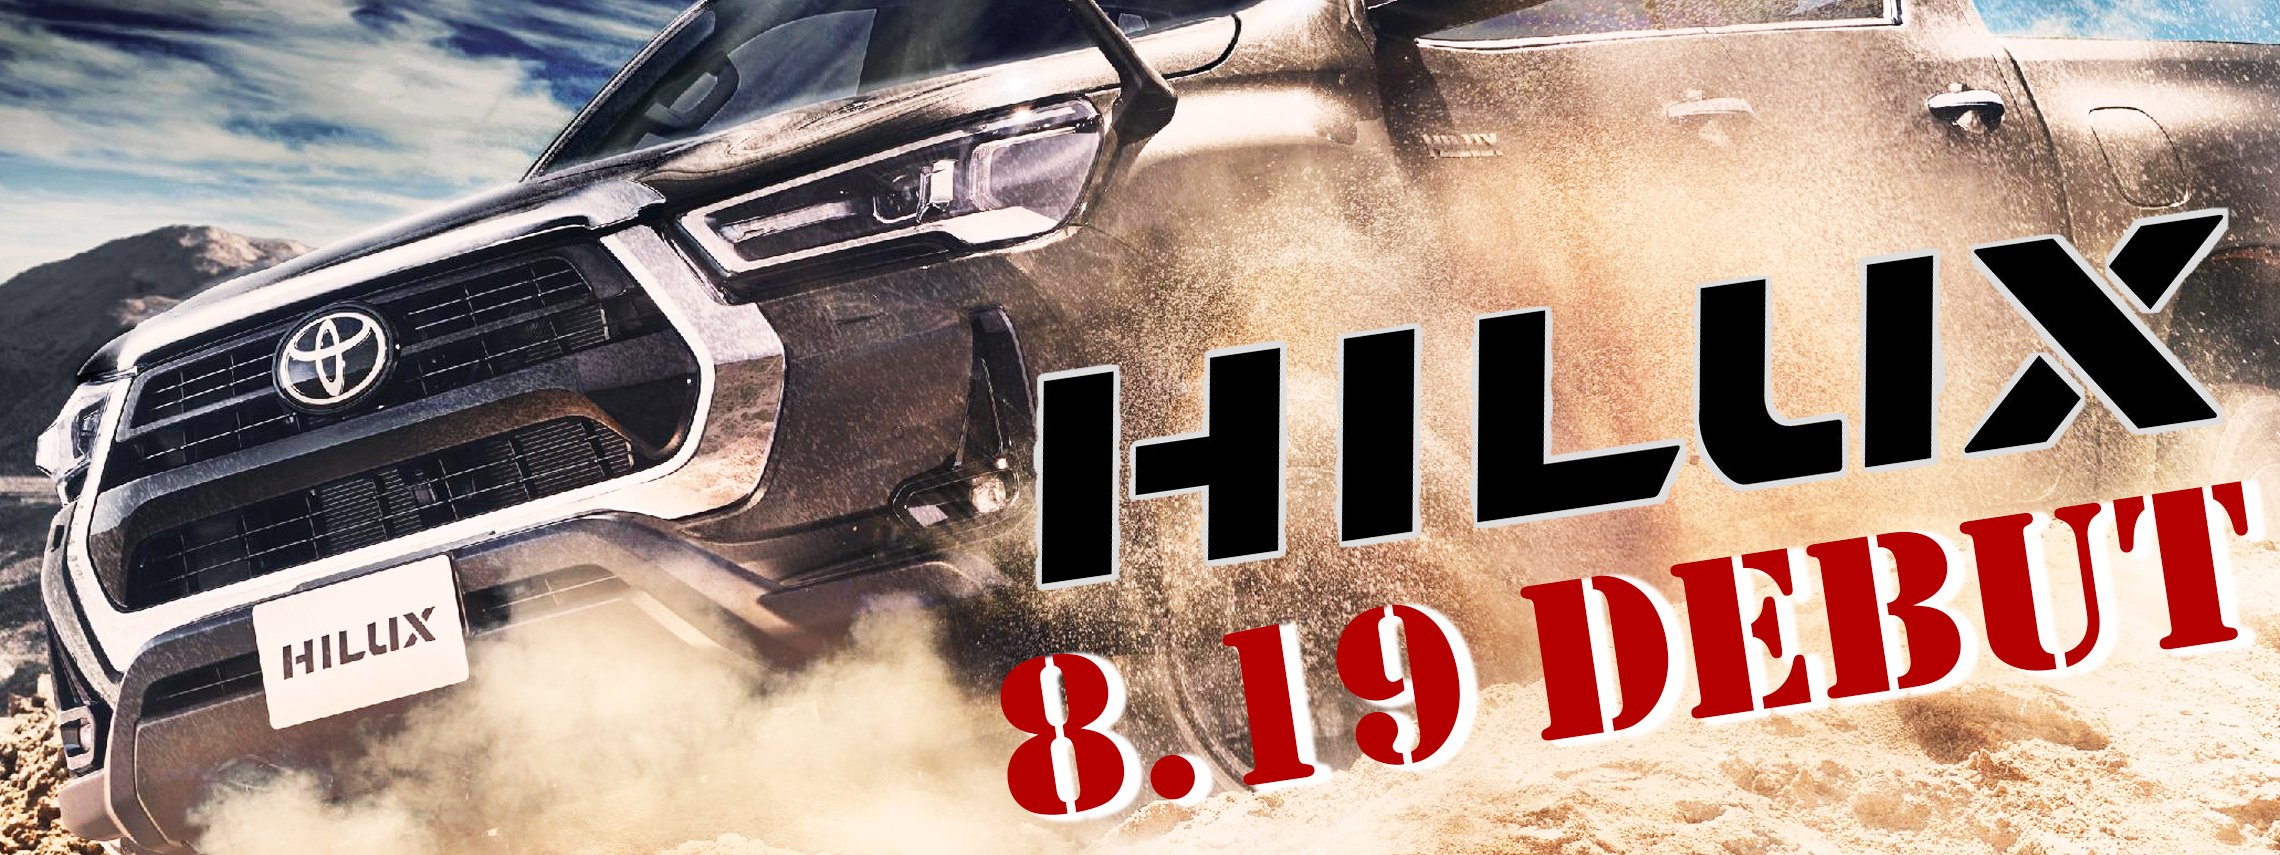 hilux-debut